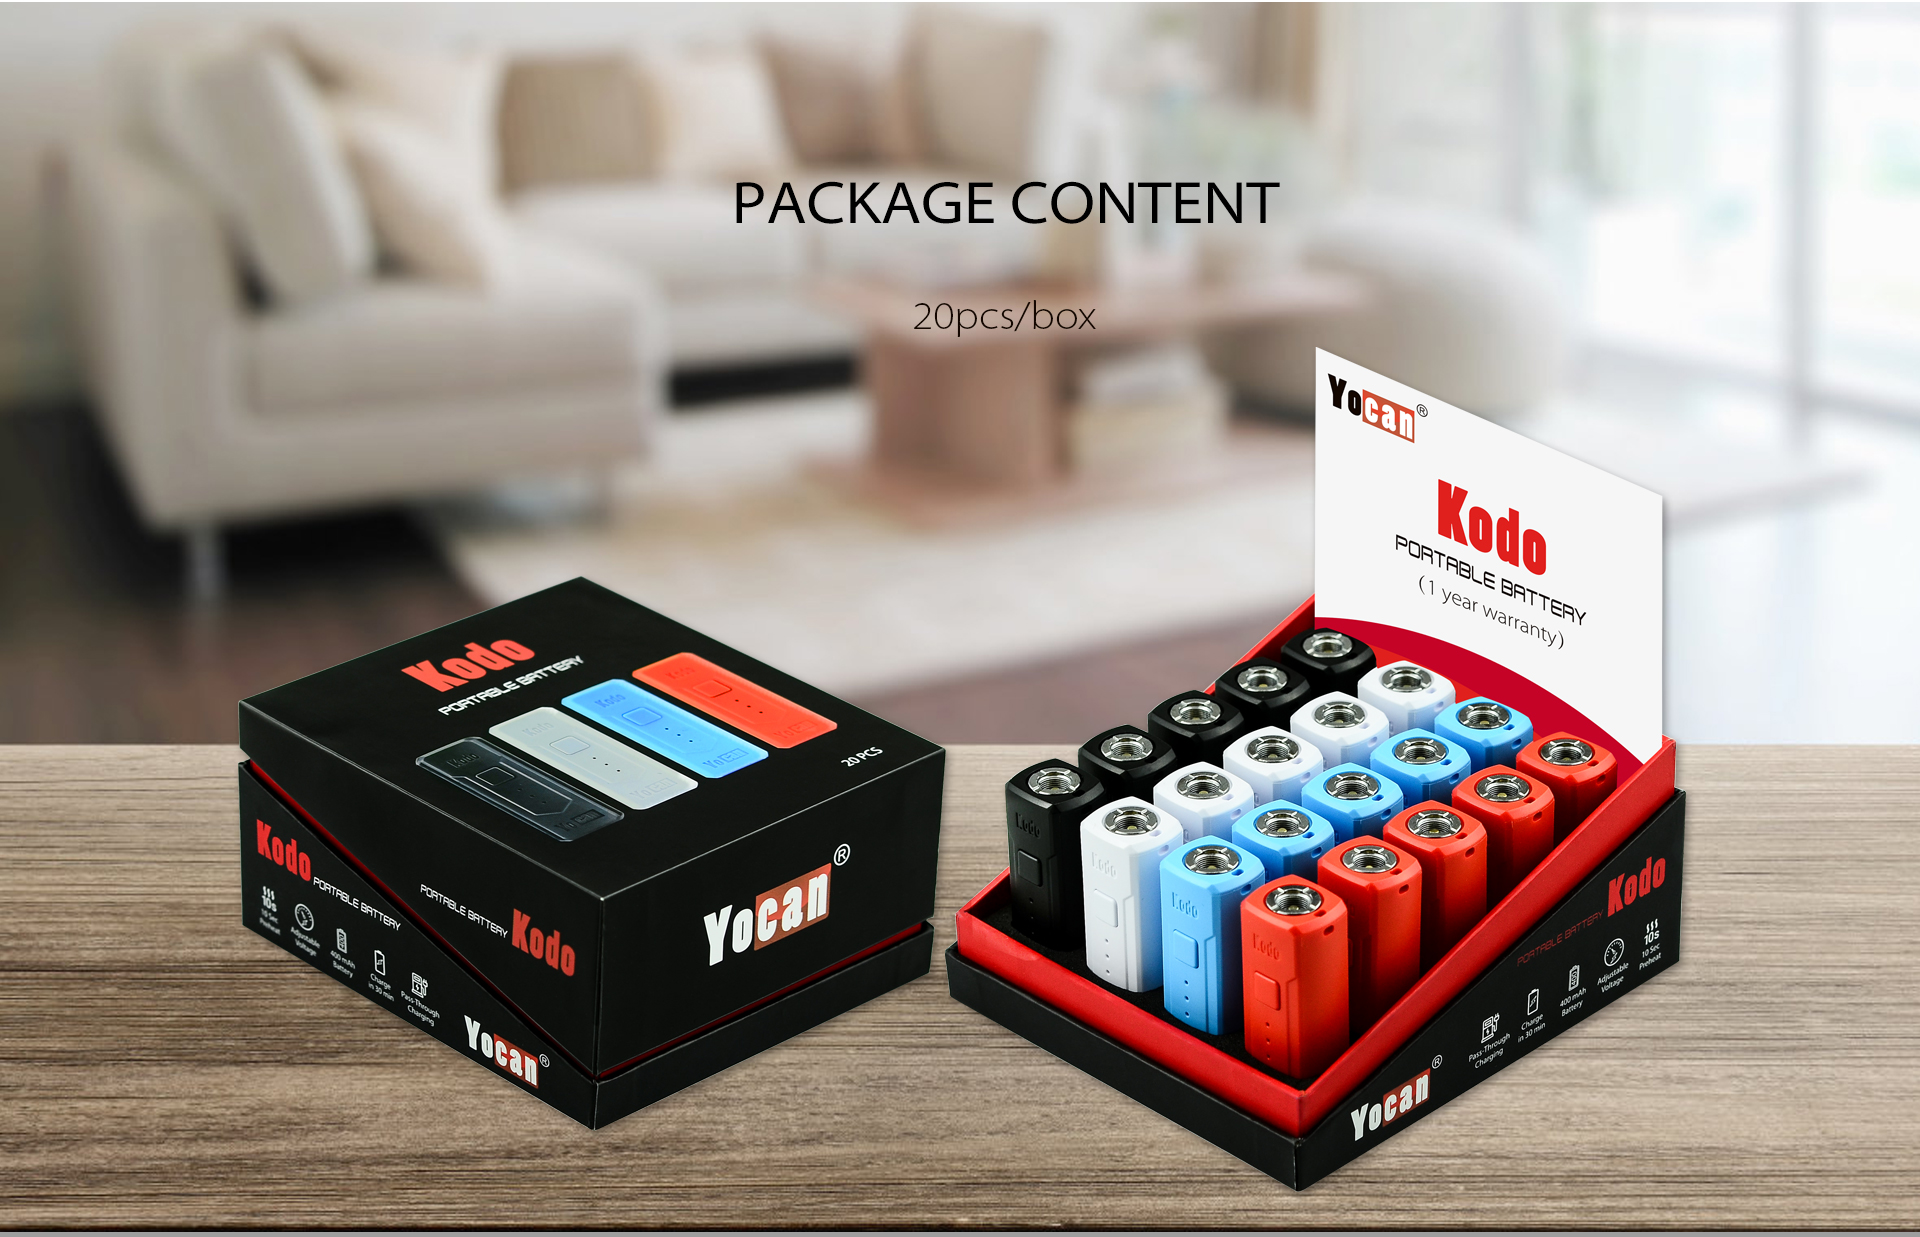 The Yocan Kodo Box Mod Battery package content: 20pcs in one box.